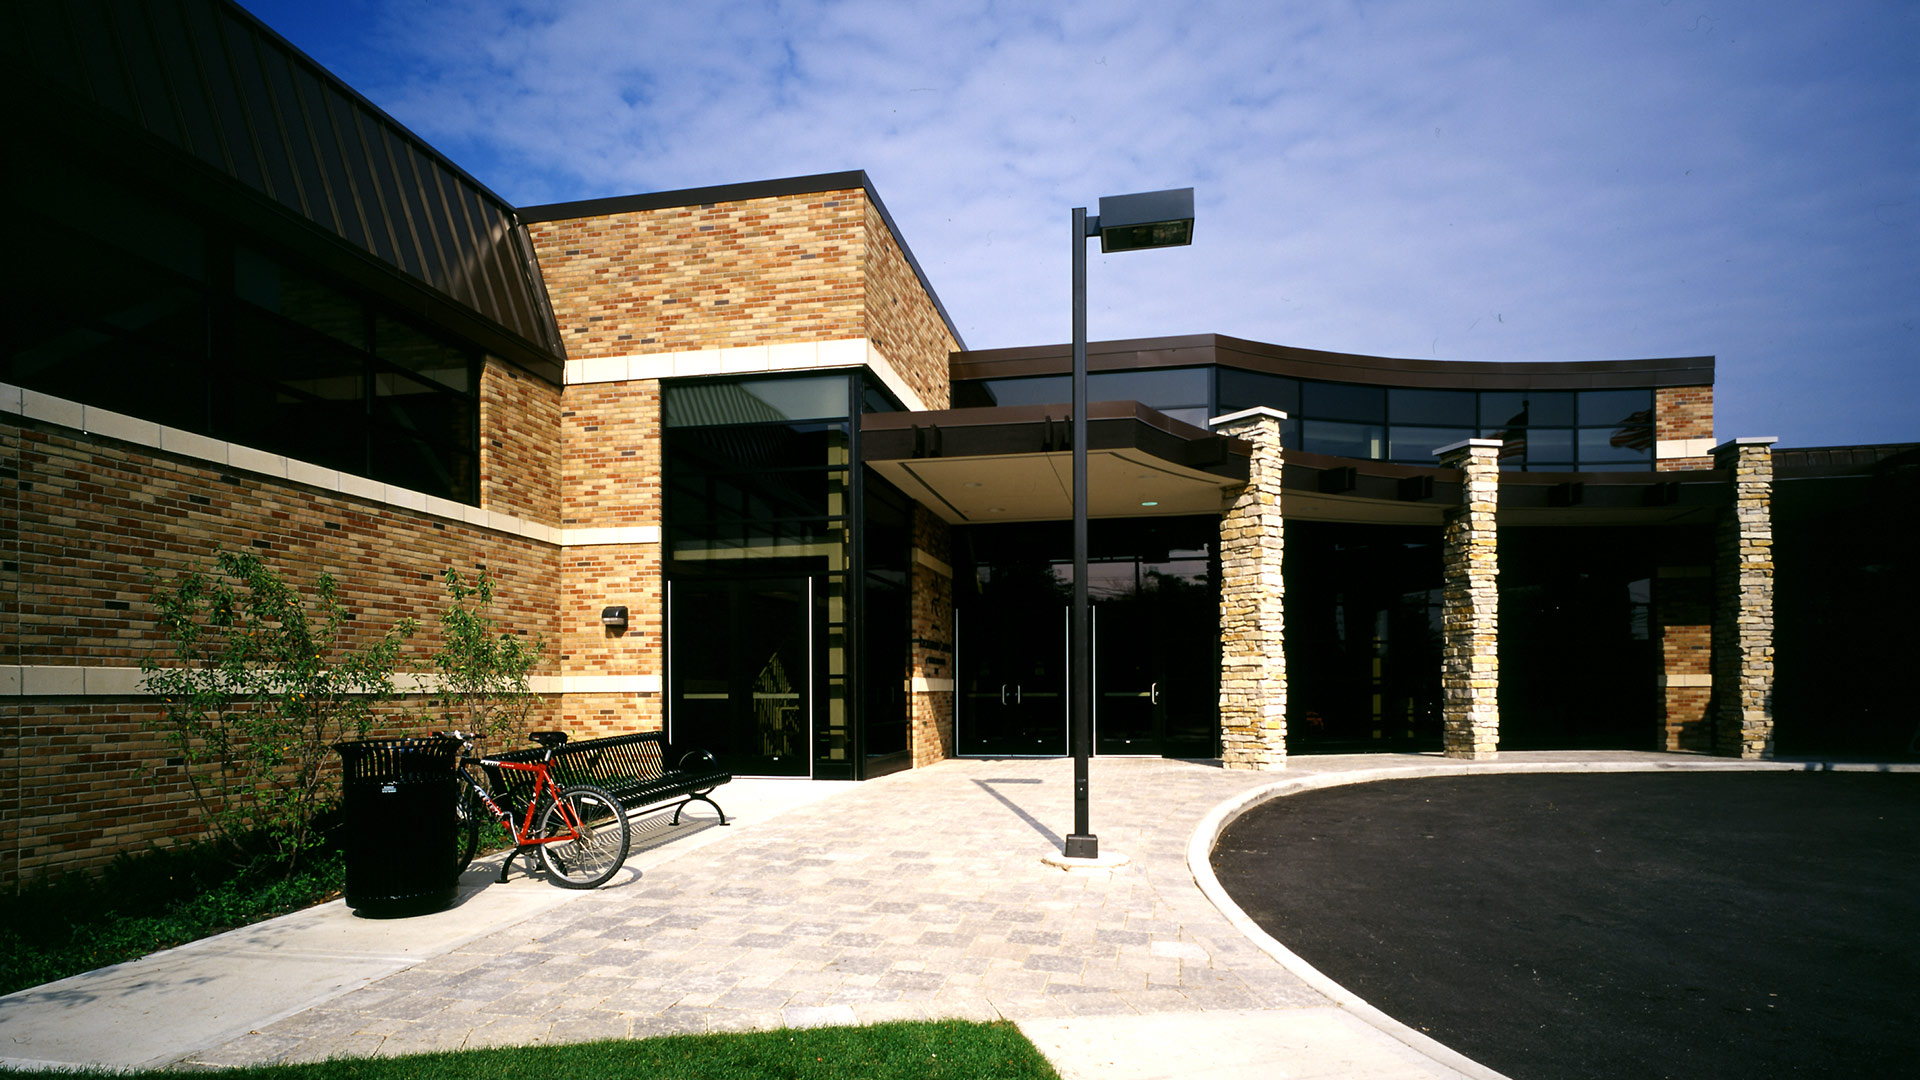 Highland Park Recreation Center